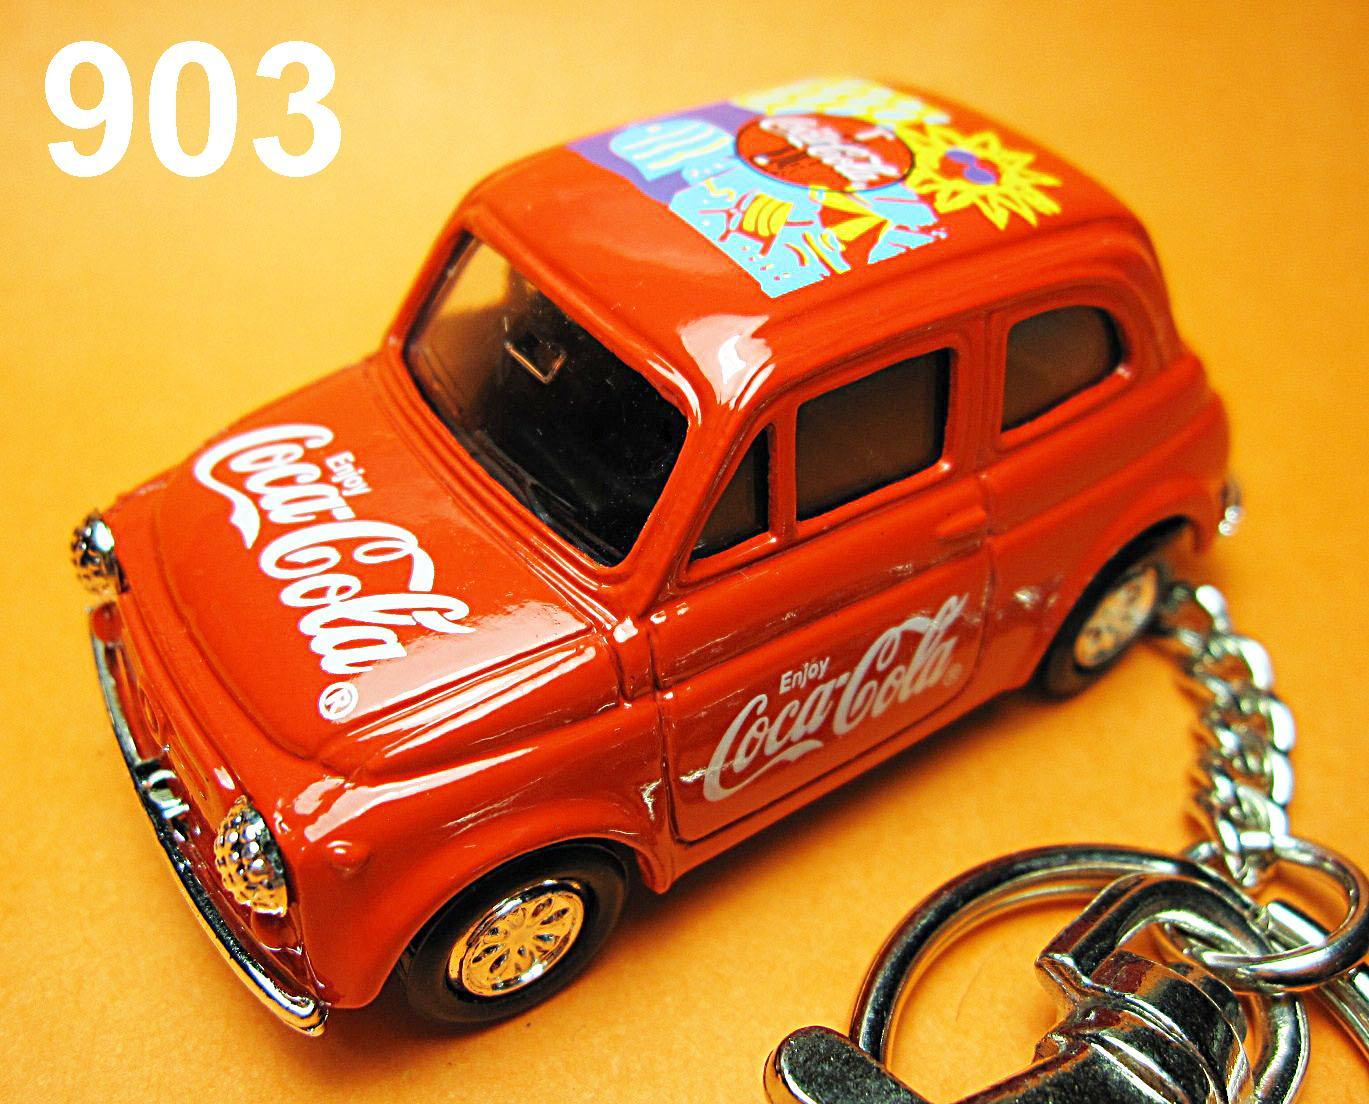 Classic Fiat 500 F (Red) Die-cast Key Chain